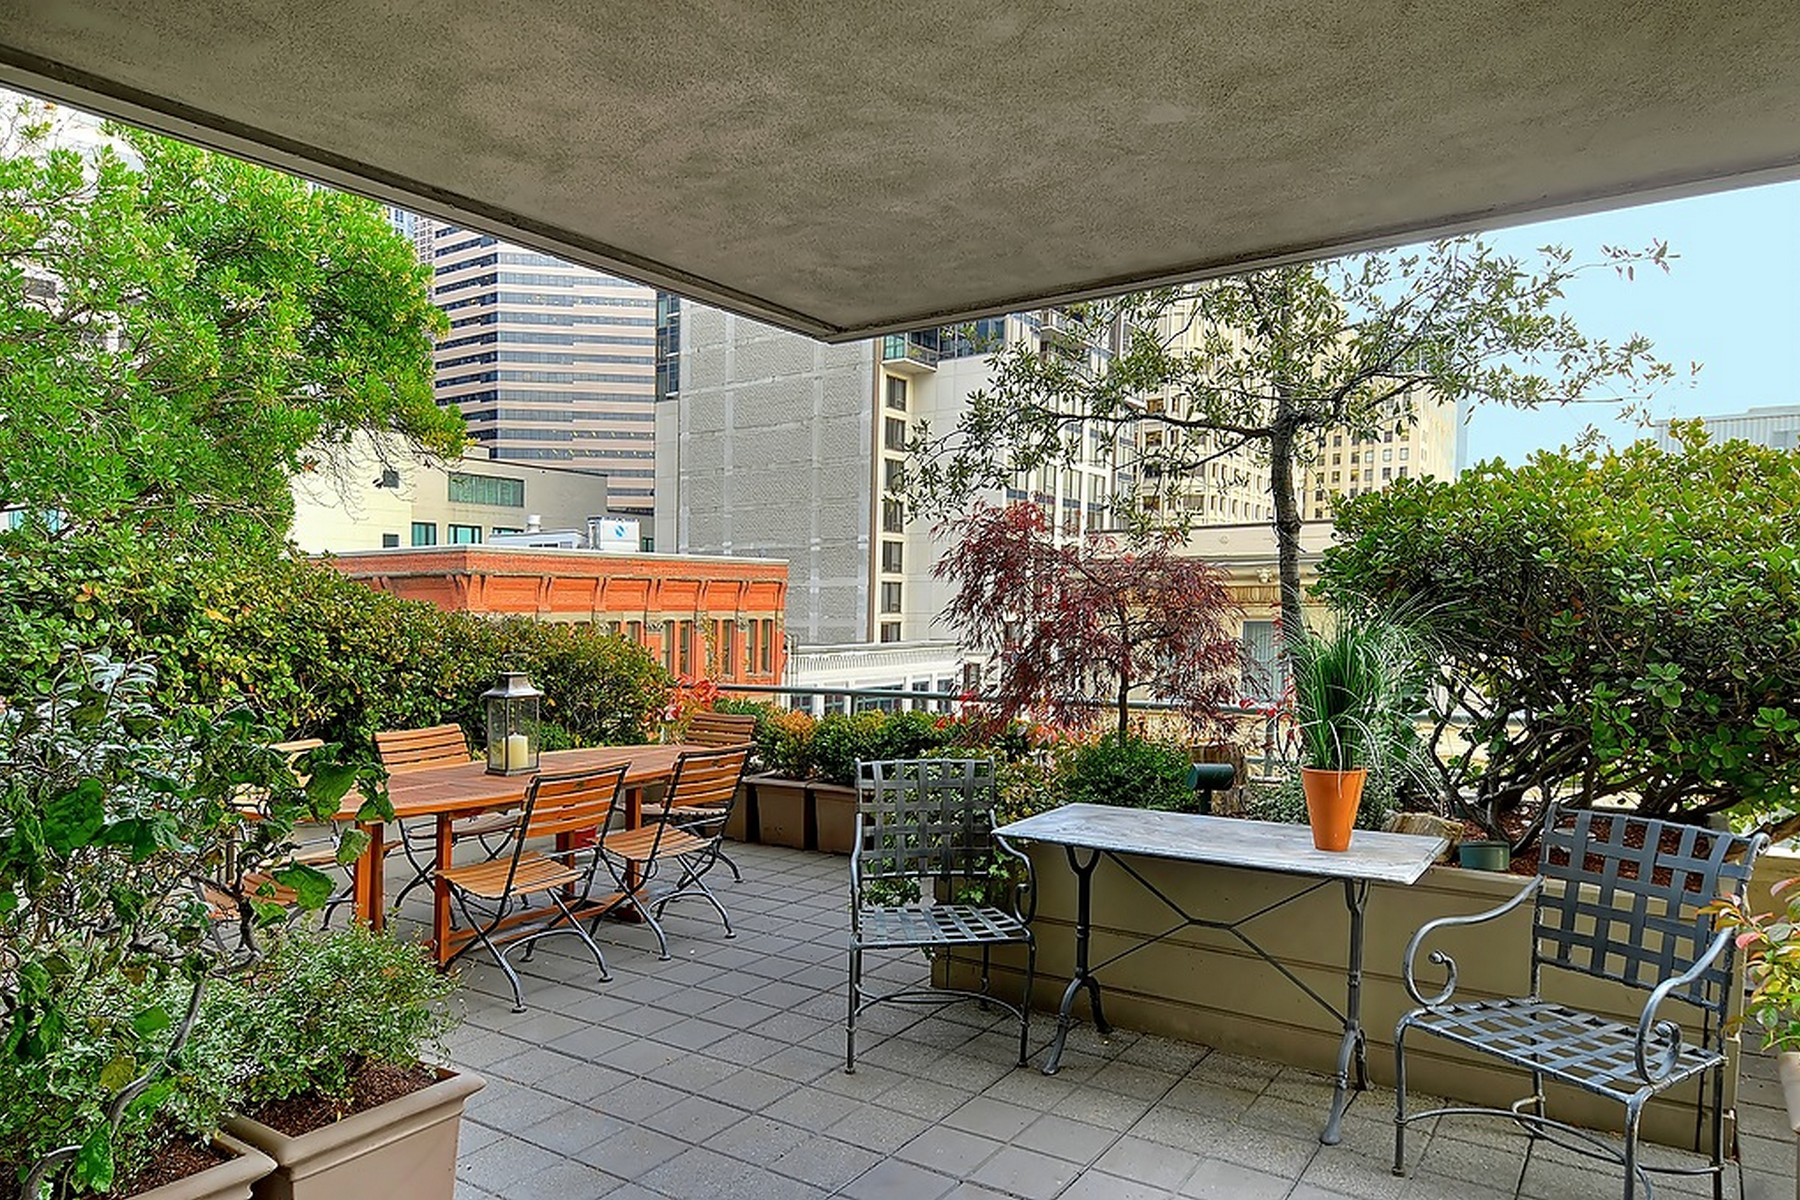 Additional photo for property listing at Contemporary Downtown Condo 1107 1st Ave #702 Seattle, Washington 98101 United States